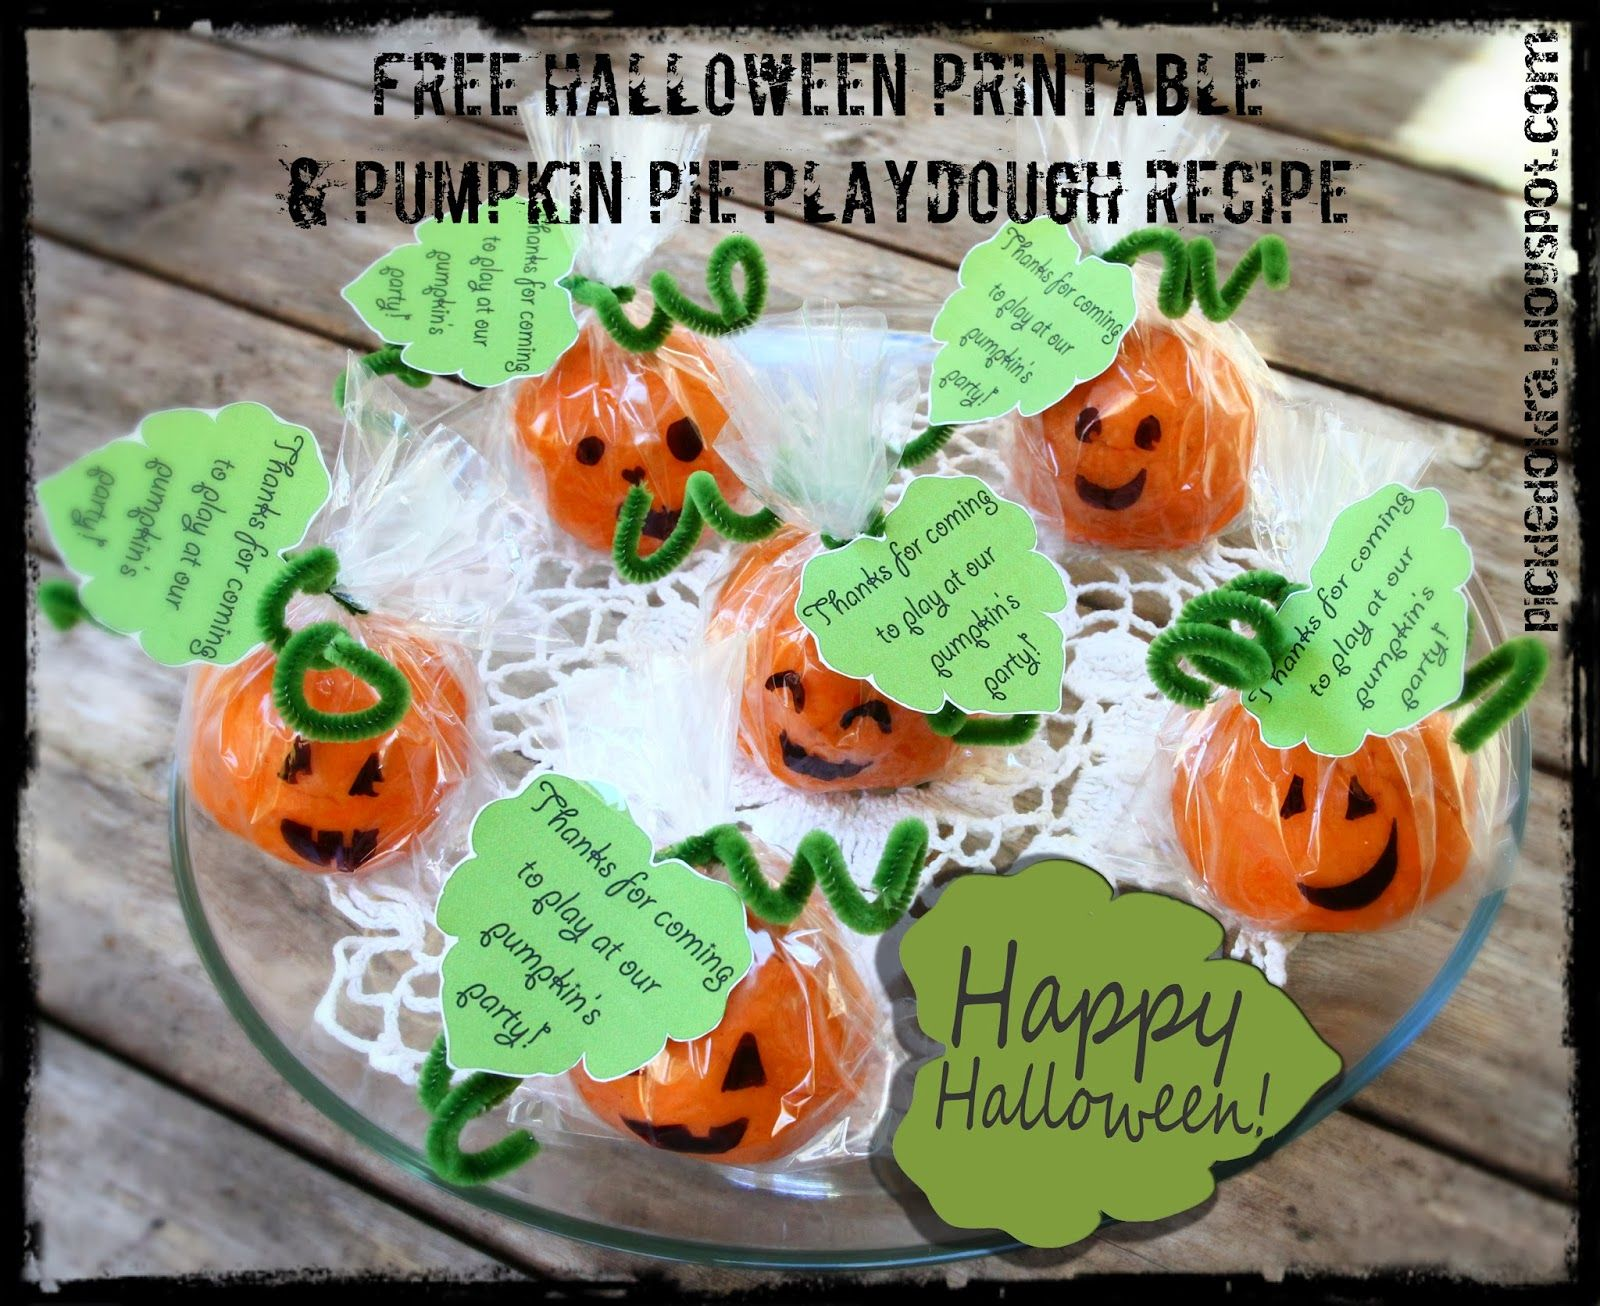 Pickled Okra by Charlie: Happy Halloween! Pumkin Pie Playdough Recipe & Free Printable Party Favor Tags